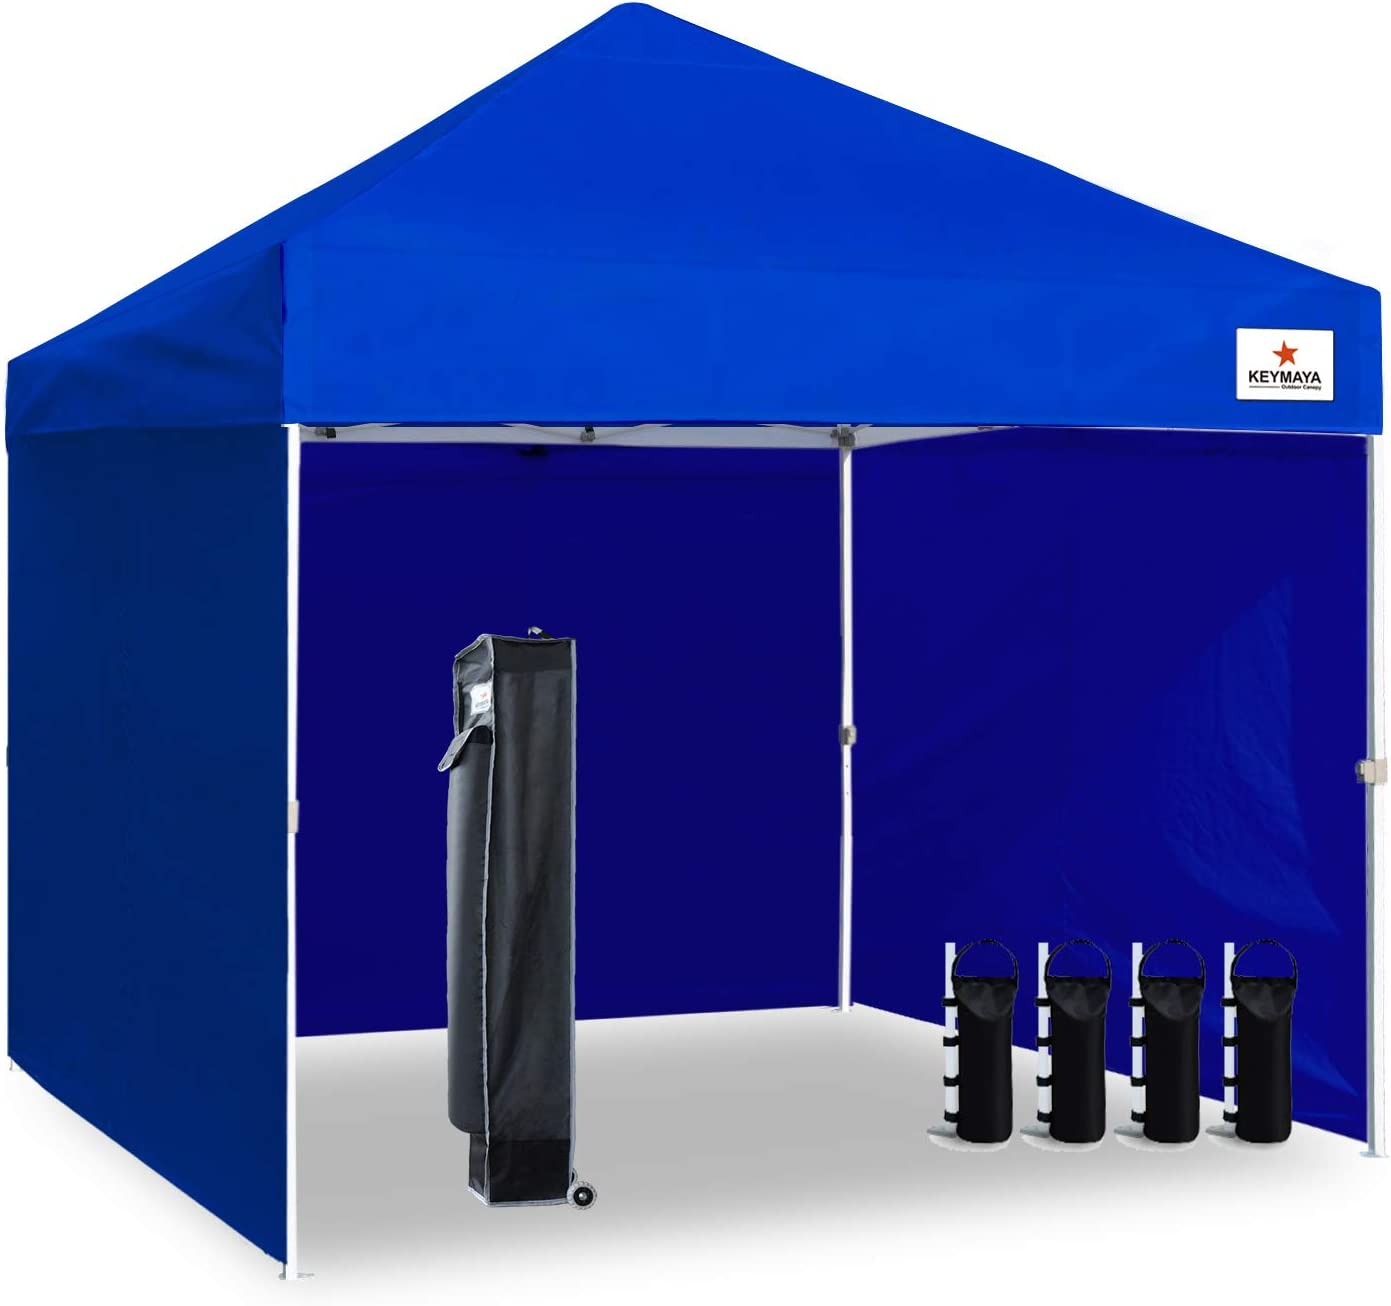 Keymaya 10 x10 Ez Pop Up Canopy Tent Commercial Instant Shelter with 4 Removable sidewalls Bonus Weight Bag 4-pc Pack, 10×10, Blue